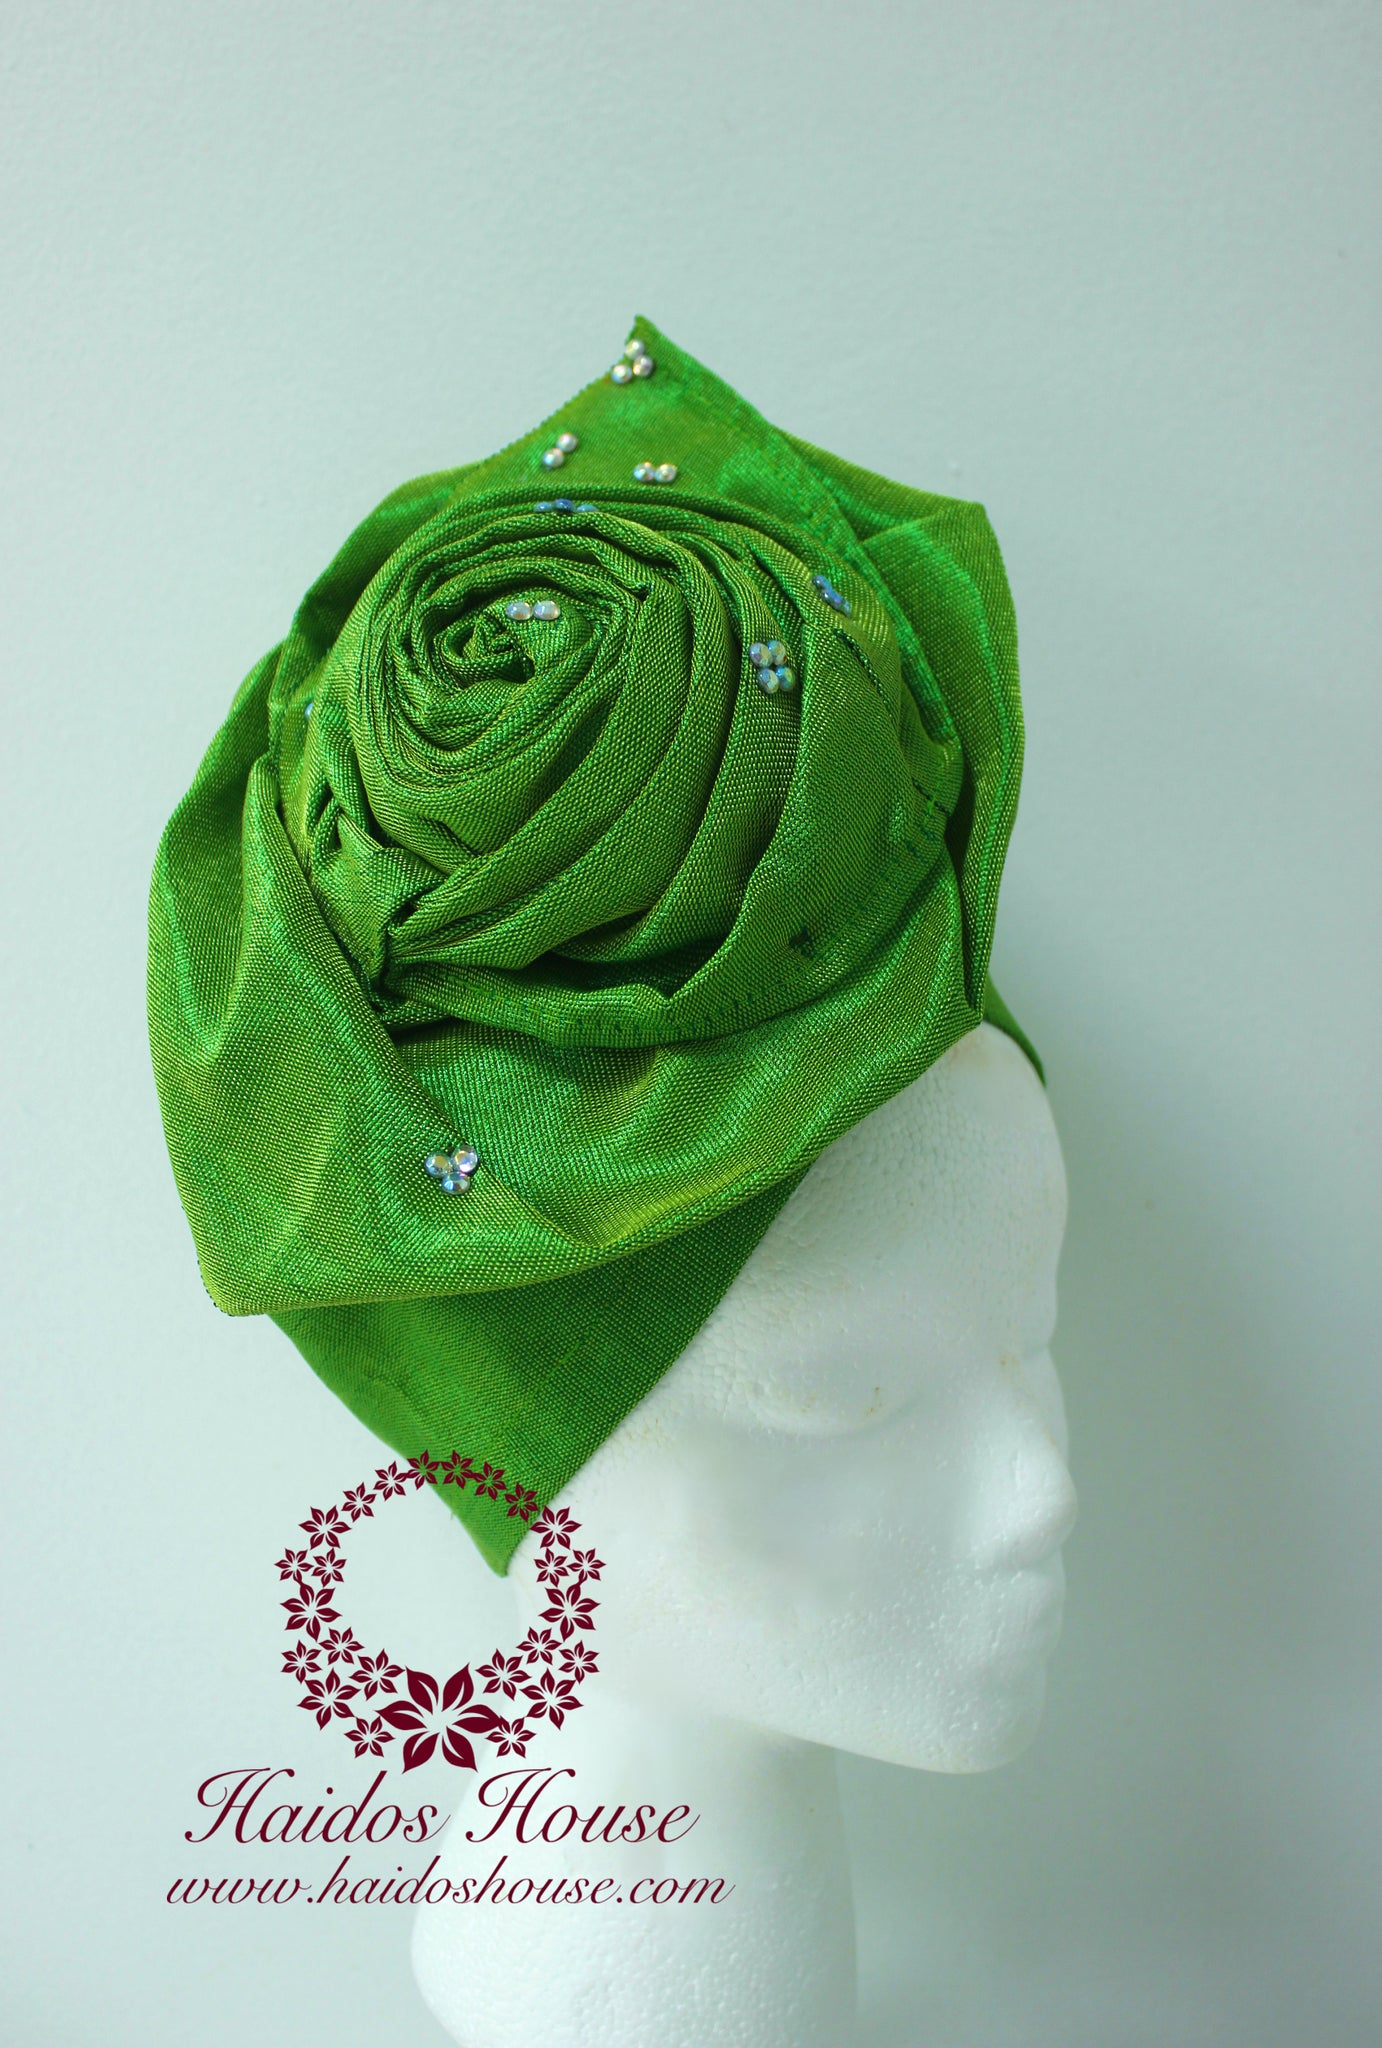 ag lovely rose design auto gele aso oke turban in lime green